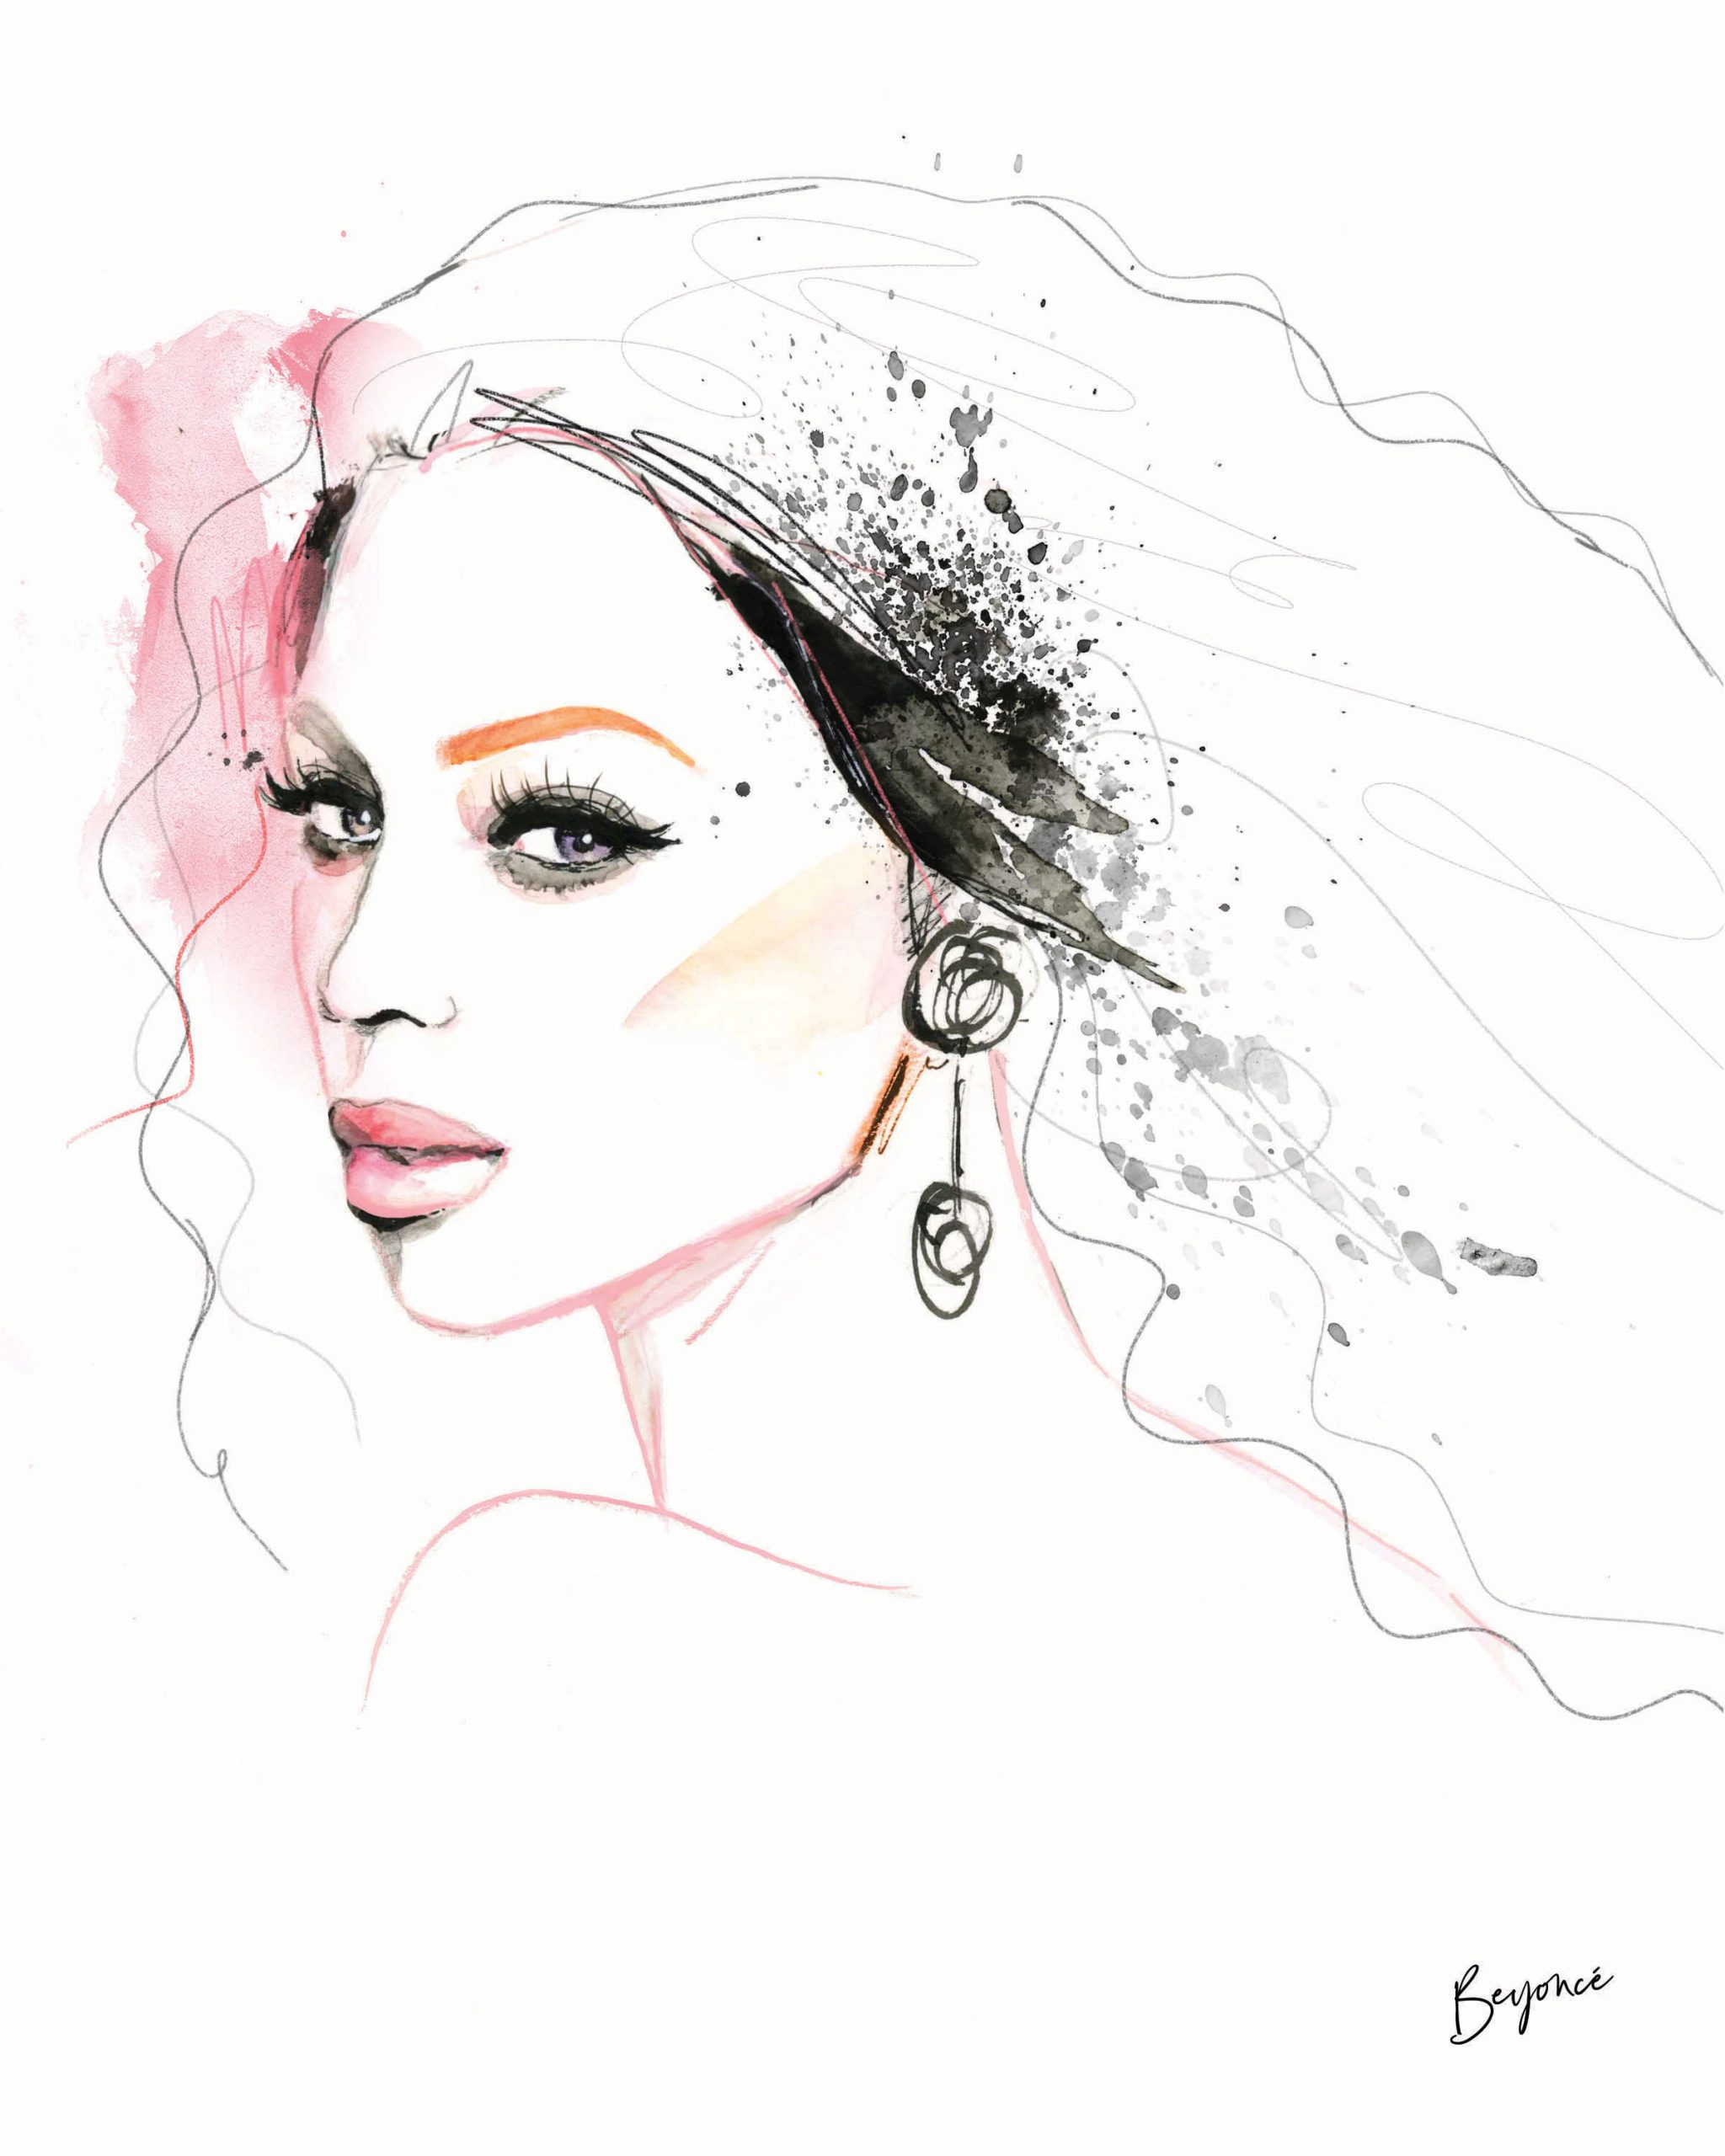 kalika yap's Little Brand Book Artwork for Beyonce